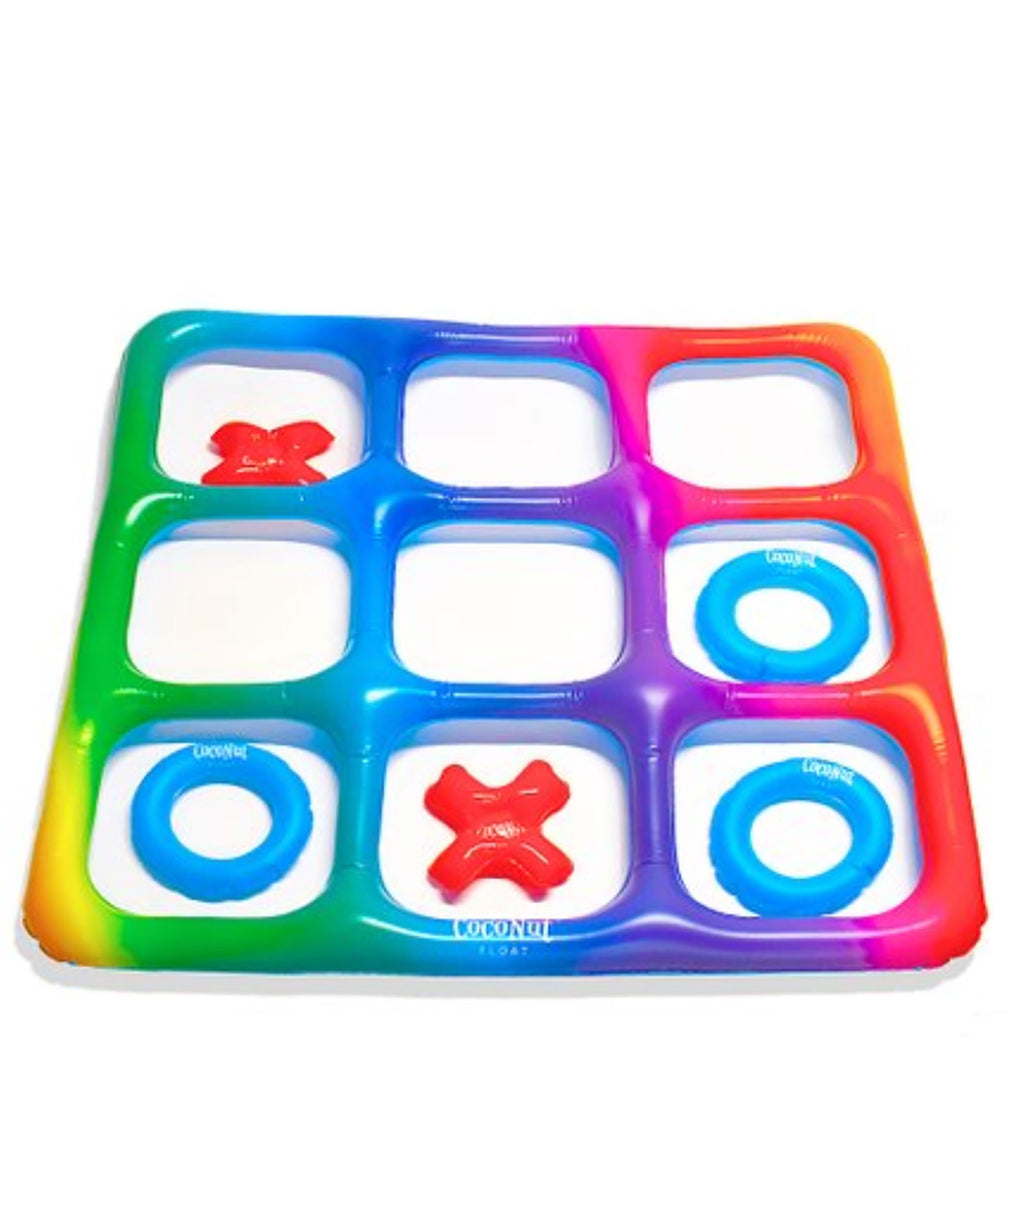 Rainbow Tic-Tac-Toe Inflatable Pool Game